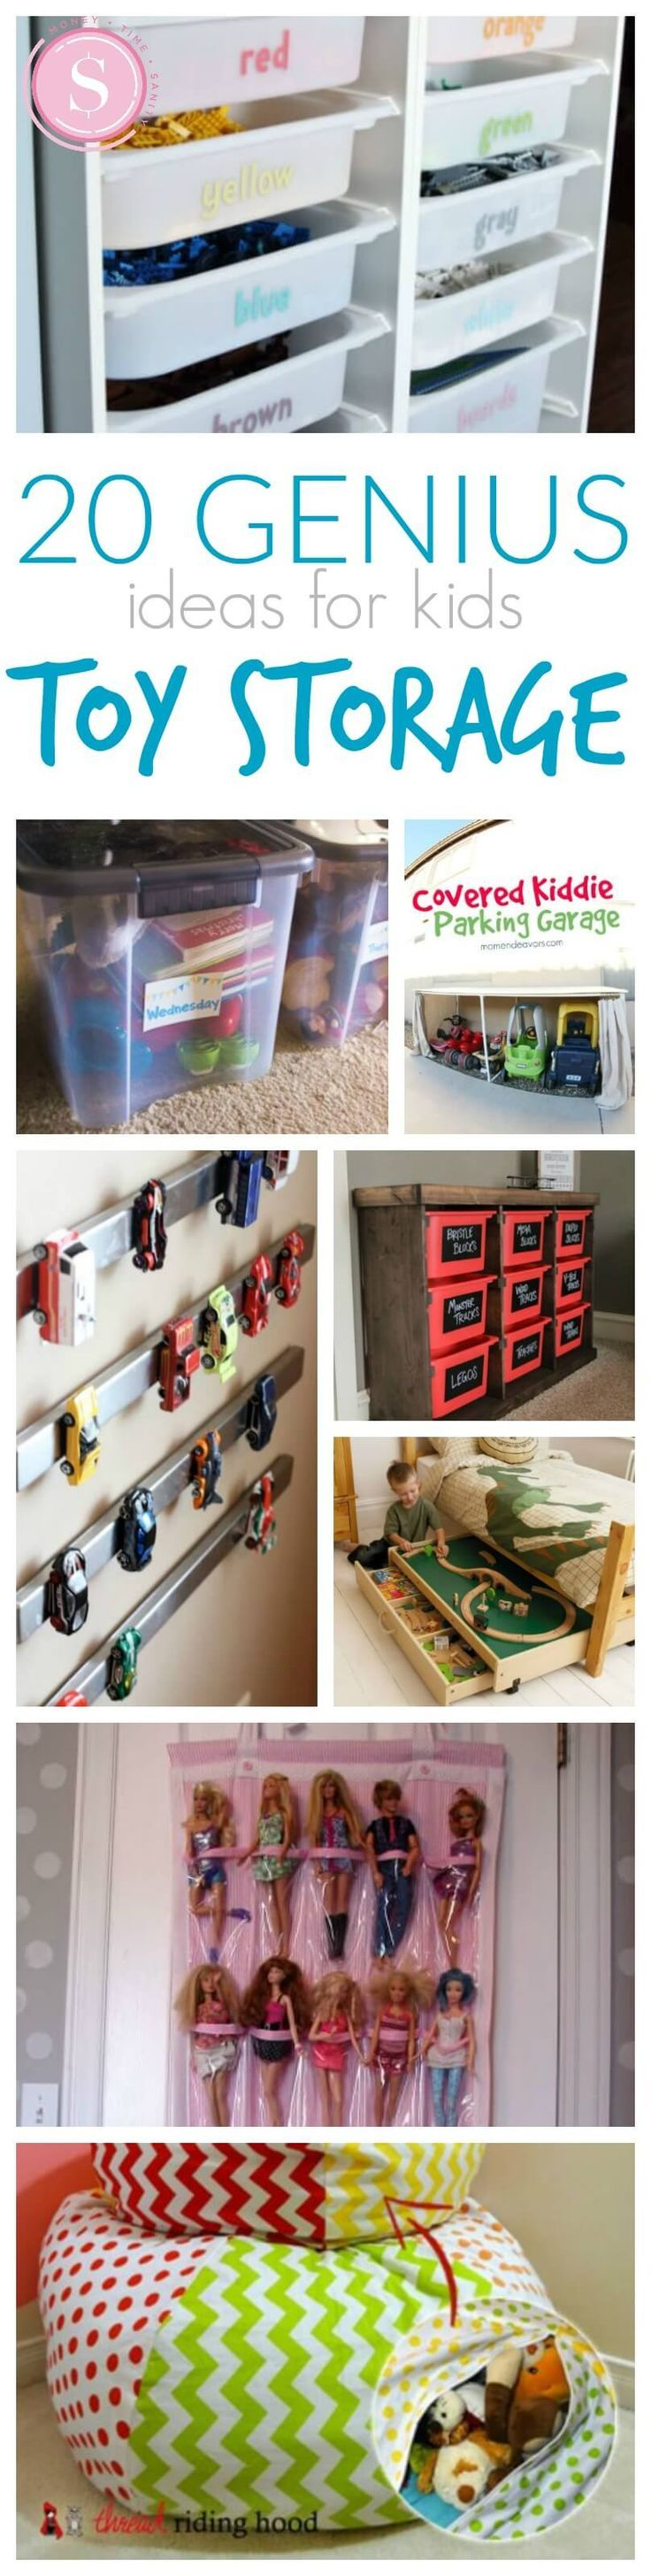 Merveilleux If You Live In A Small Space, Staying Organized Is Always A Challenge With  Kids But These 20 Genius Toy Storage Ideas Can Help!